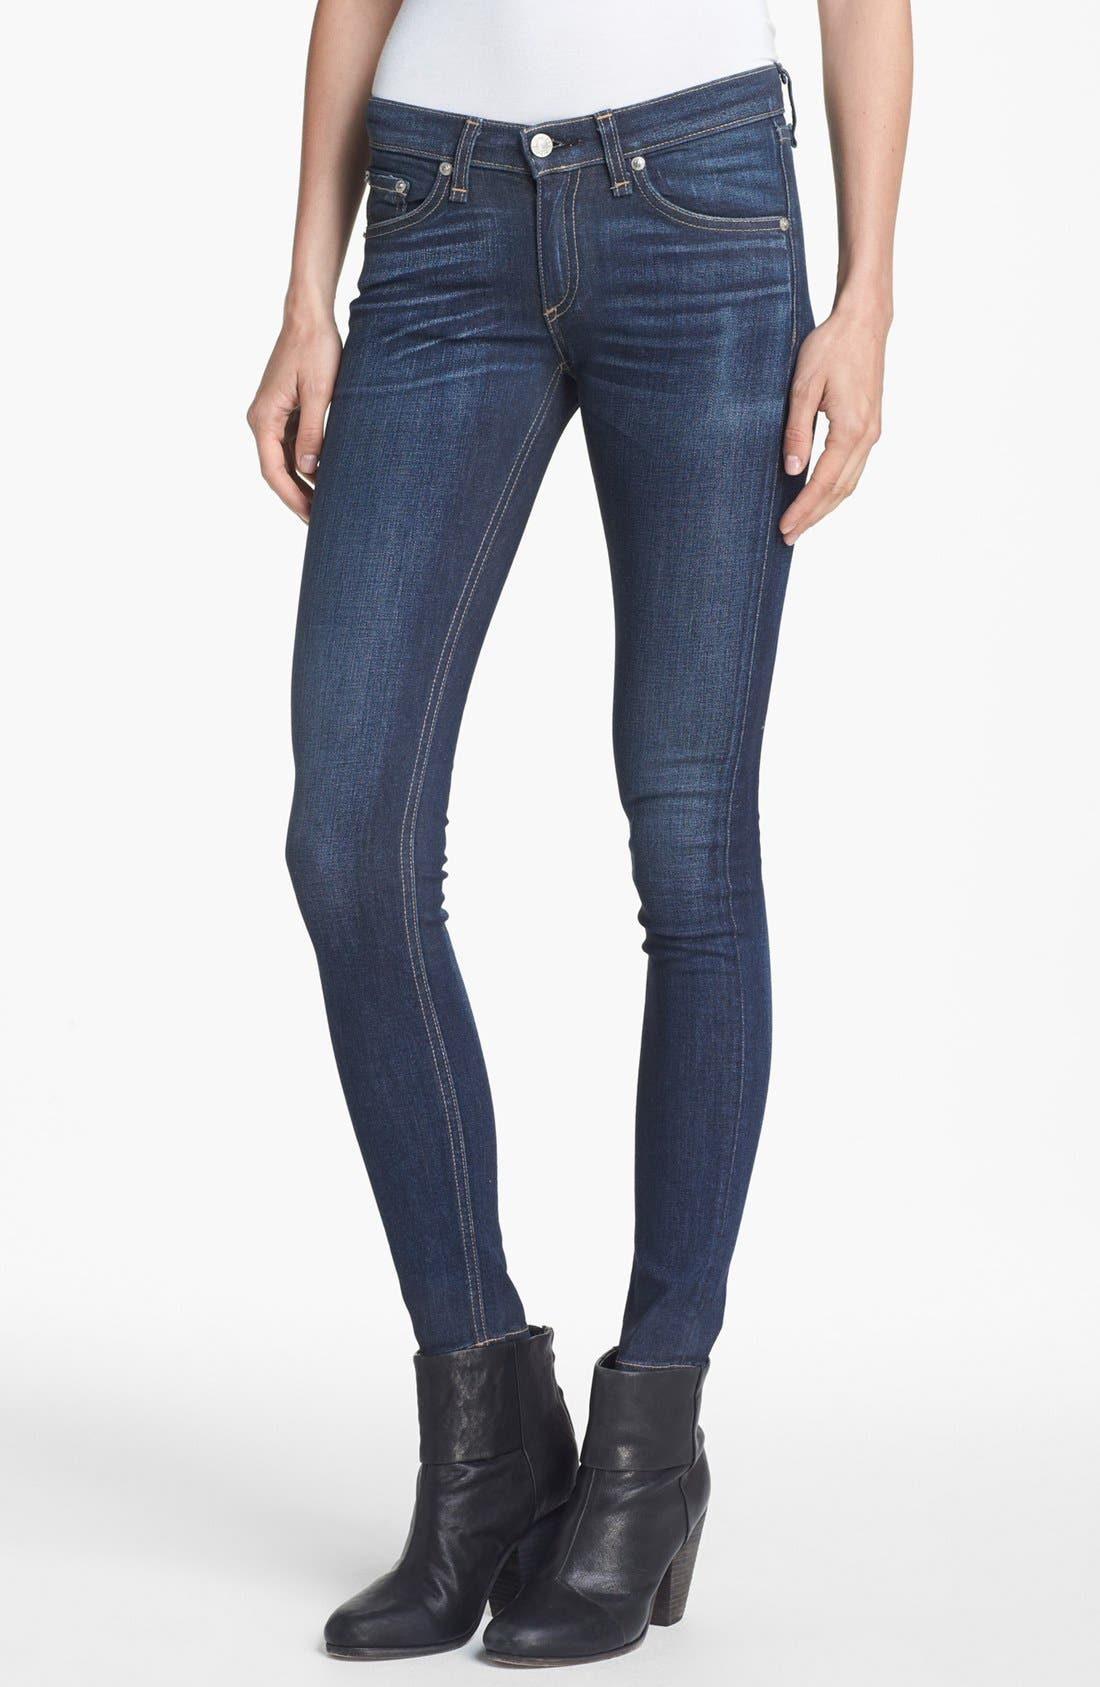 Alternate Image 1 Selected - rag & bone/JEAN Skinny Stretch Jeans (Clean Charing)